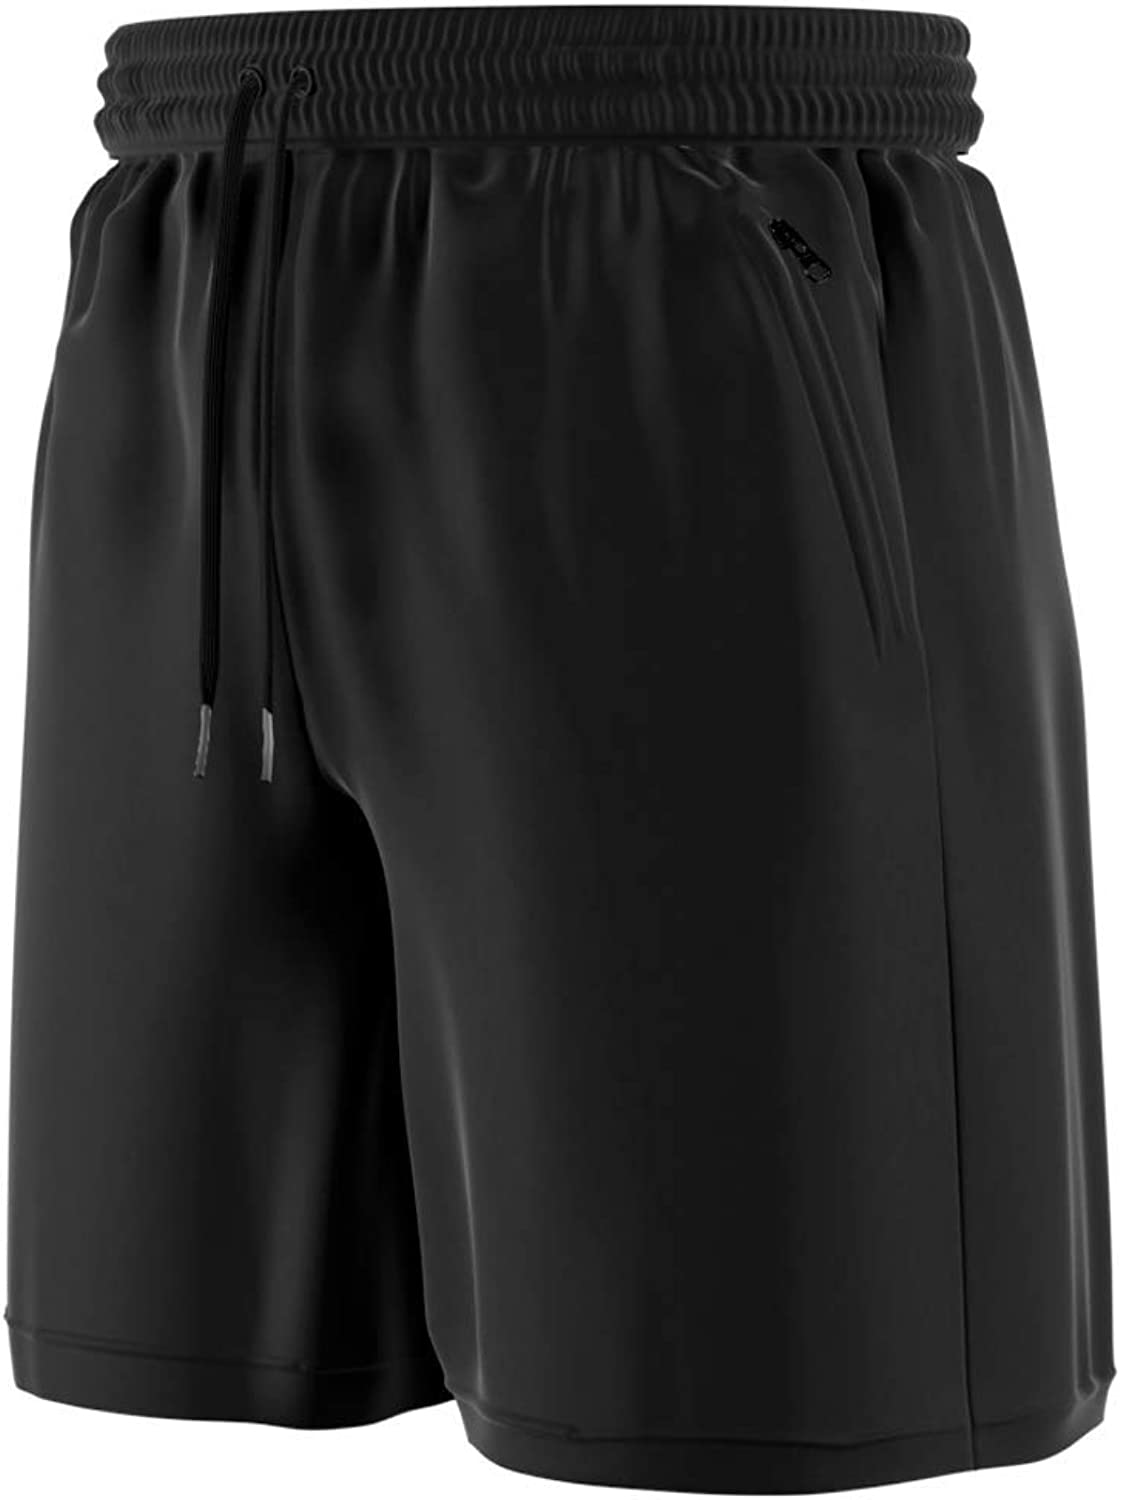 Comfort 360° - Men's Premium Athletic Sports, Running & Workout Gym Shorts with Zipper Pockets